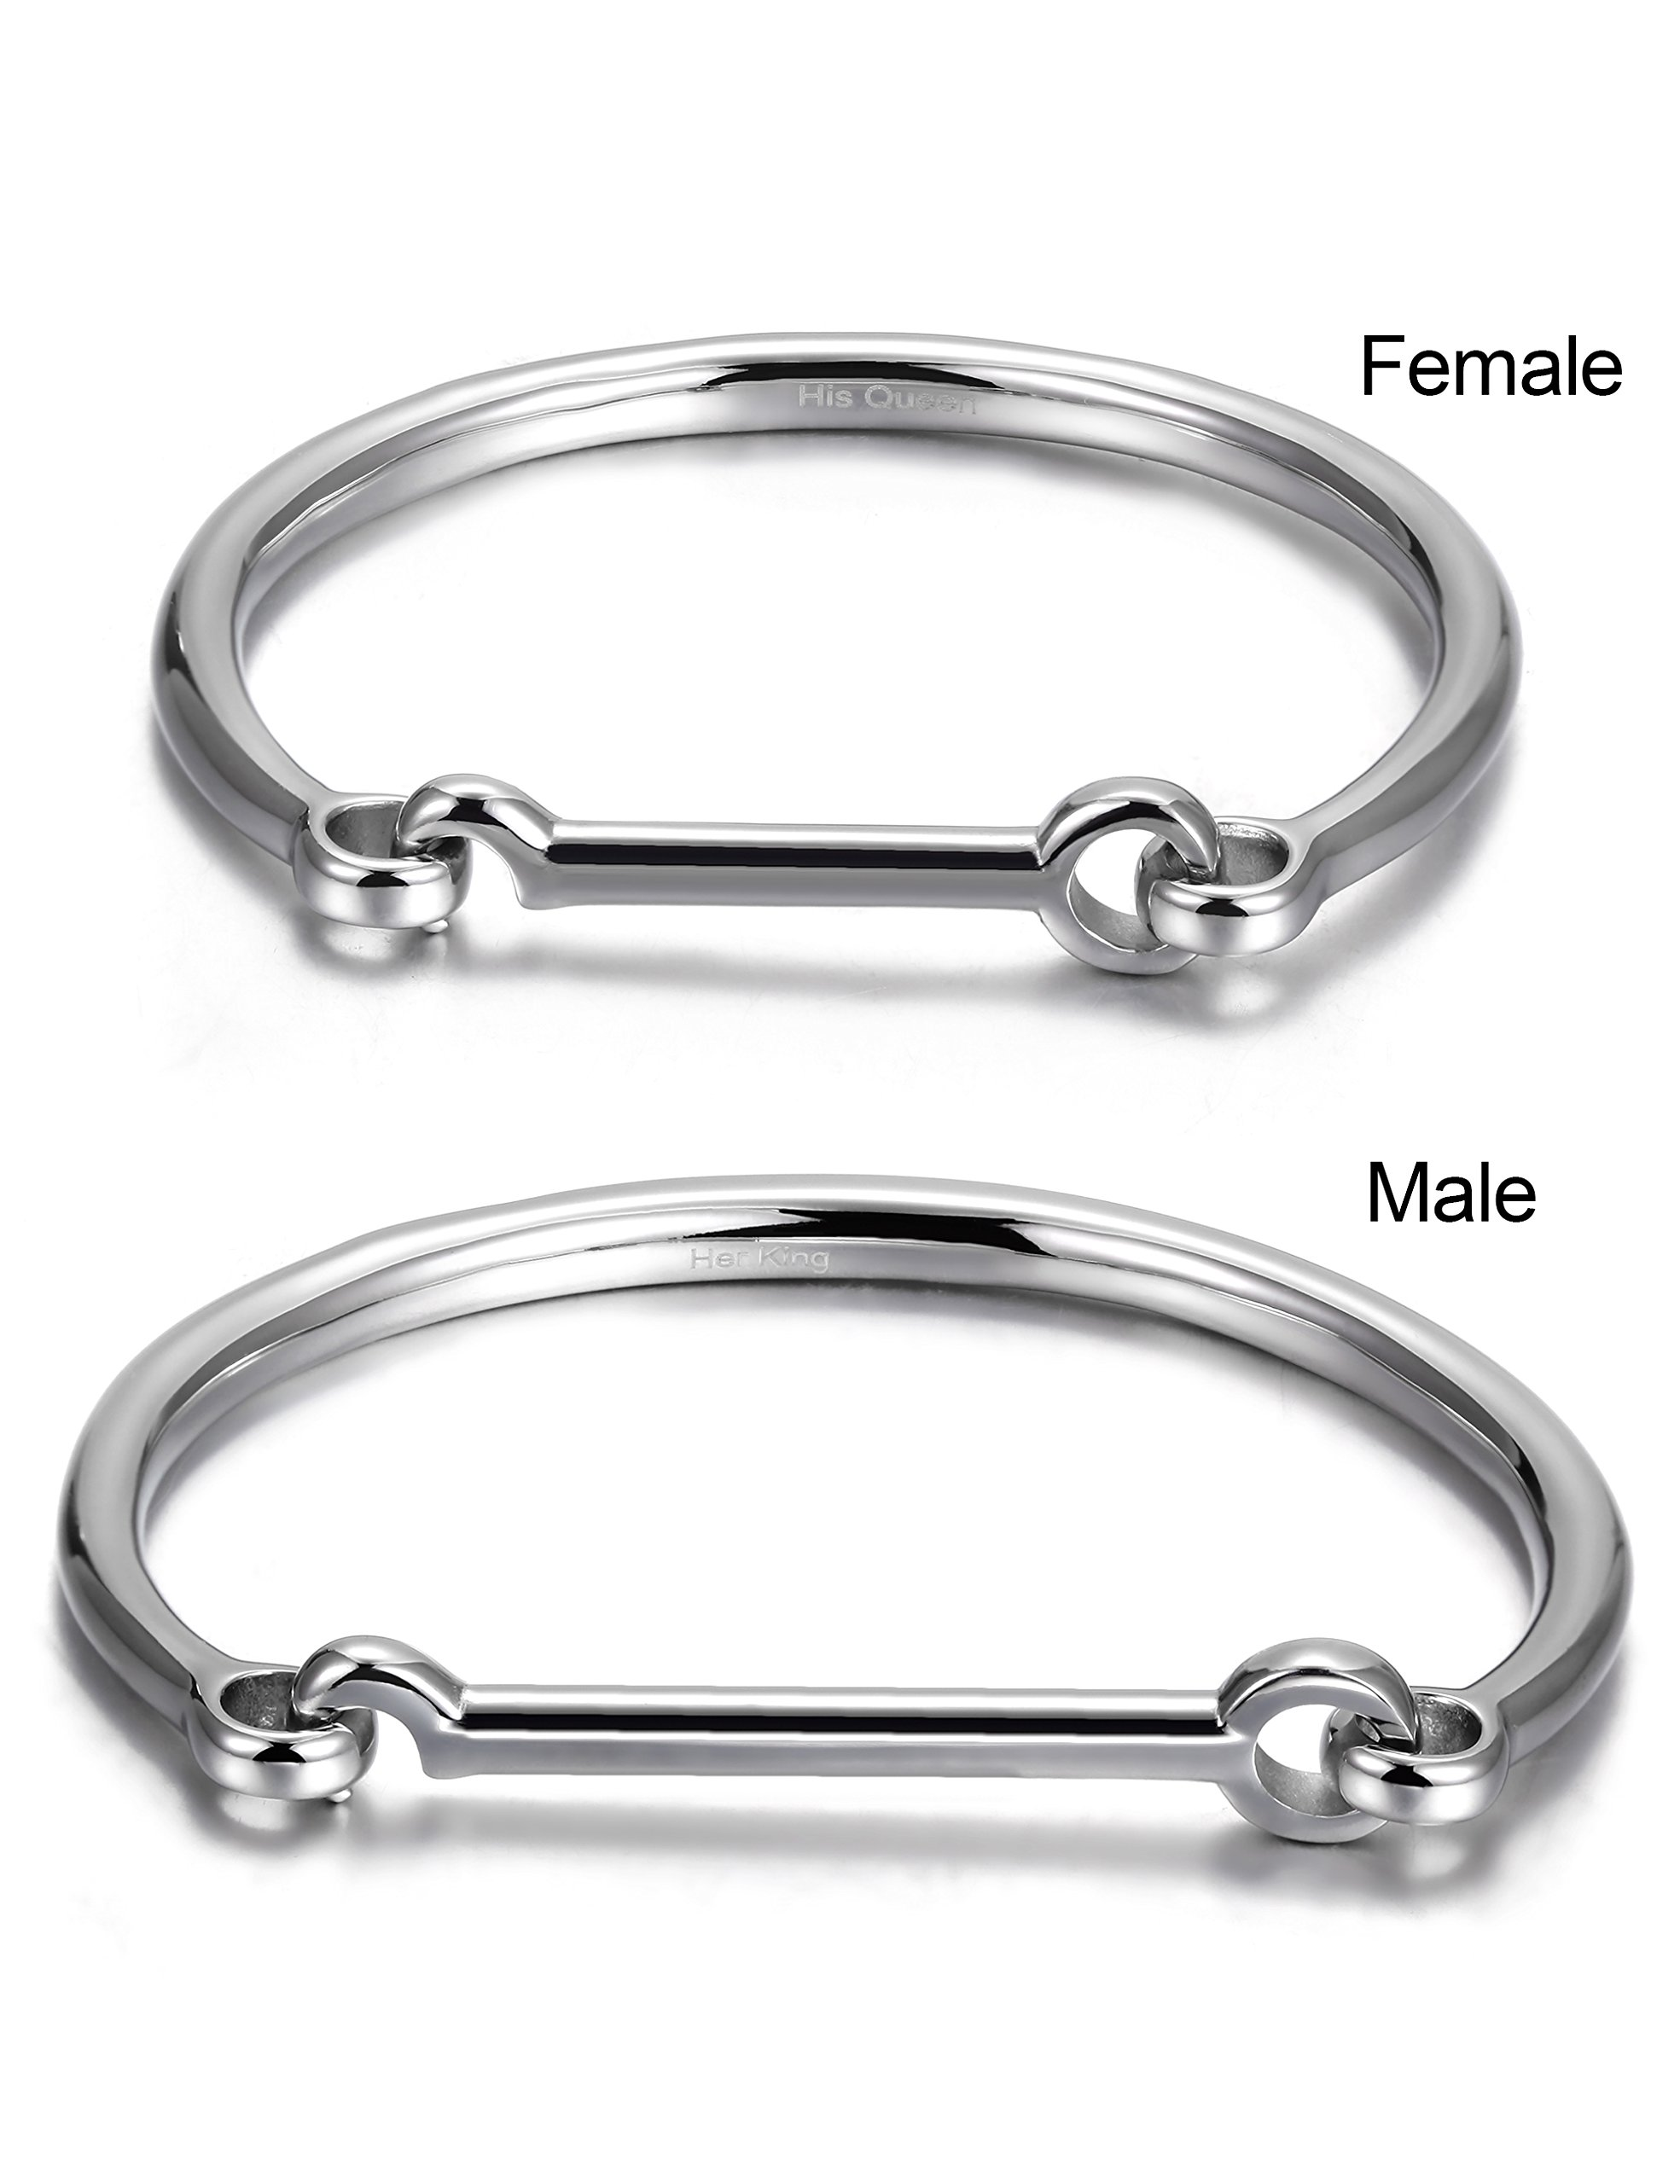 His & Hers Couples Gifts Stainless Steel Flat Head Screw Bar D-shape Cuff Bangle Bracelet White(2pcs)